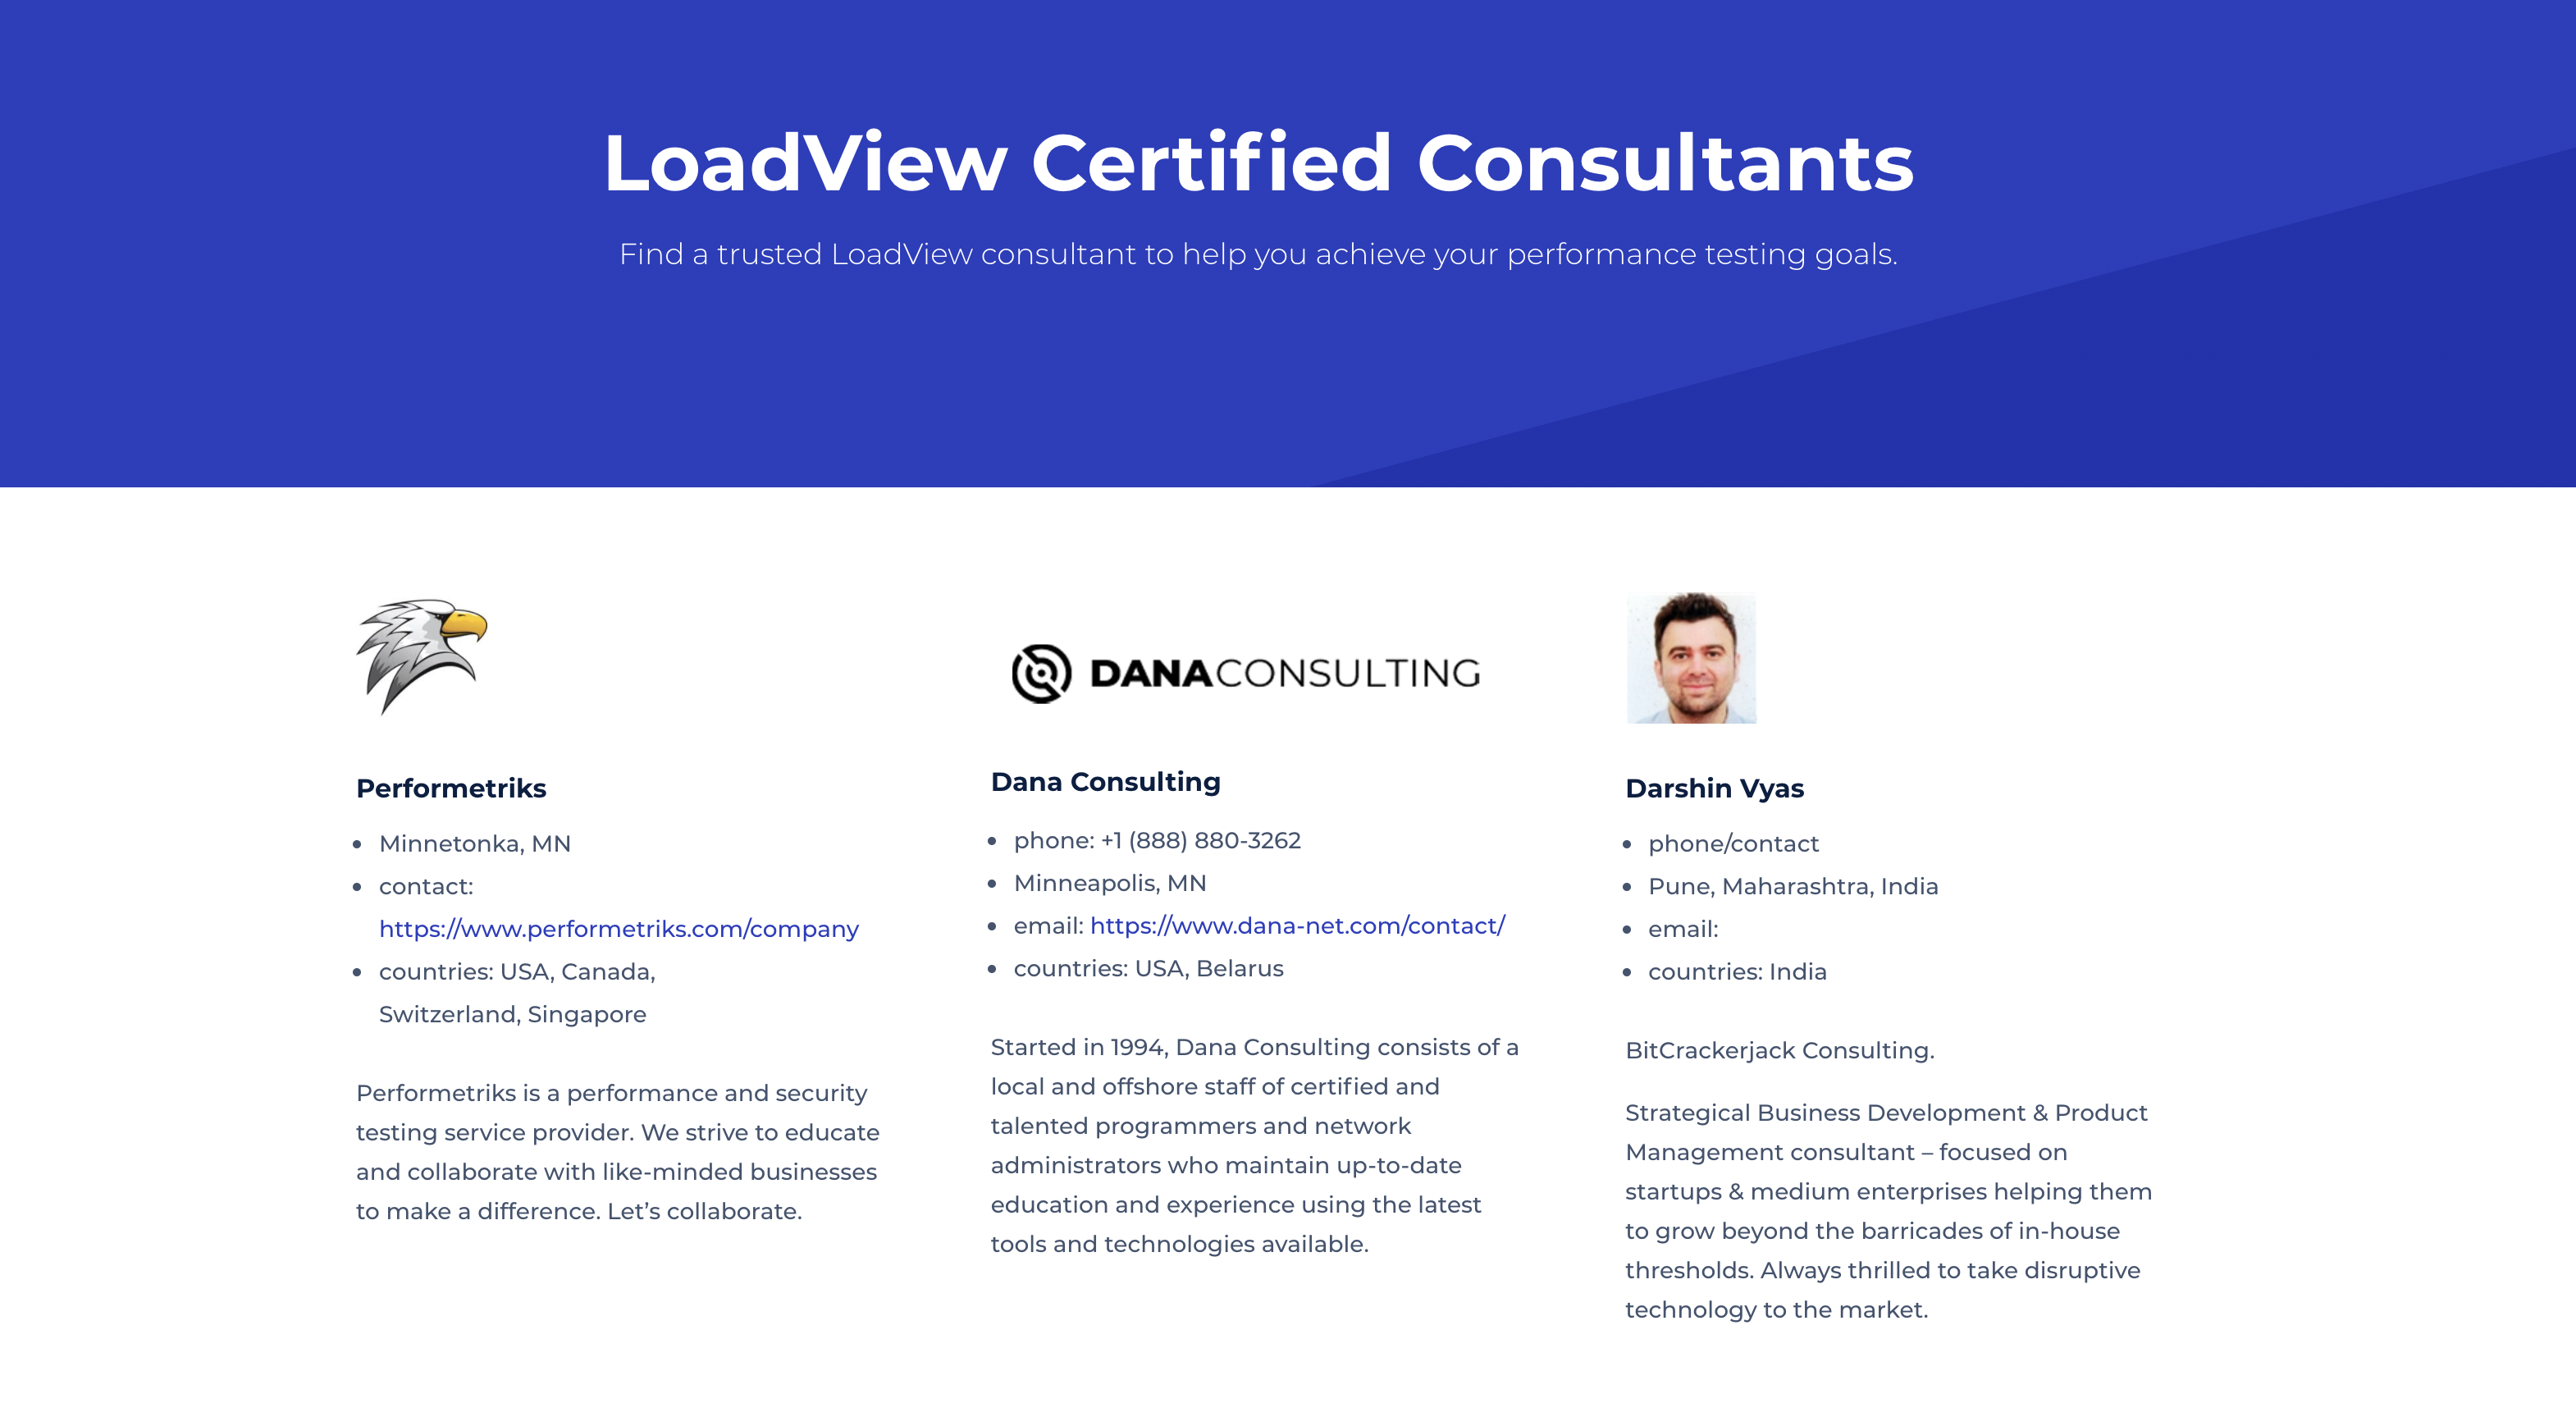 LoadView experts